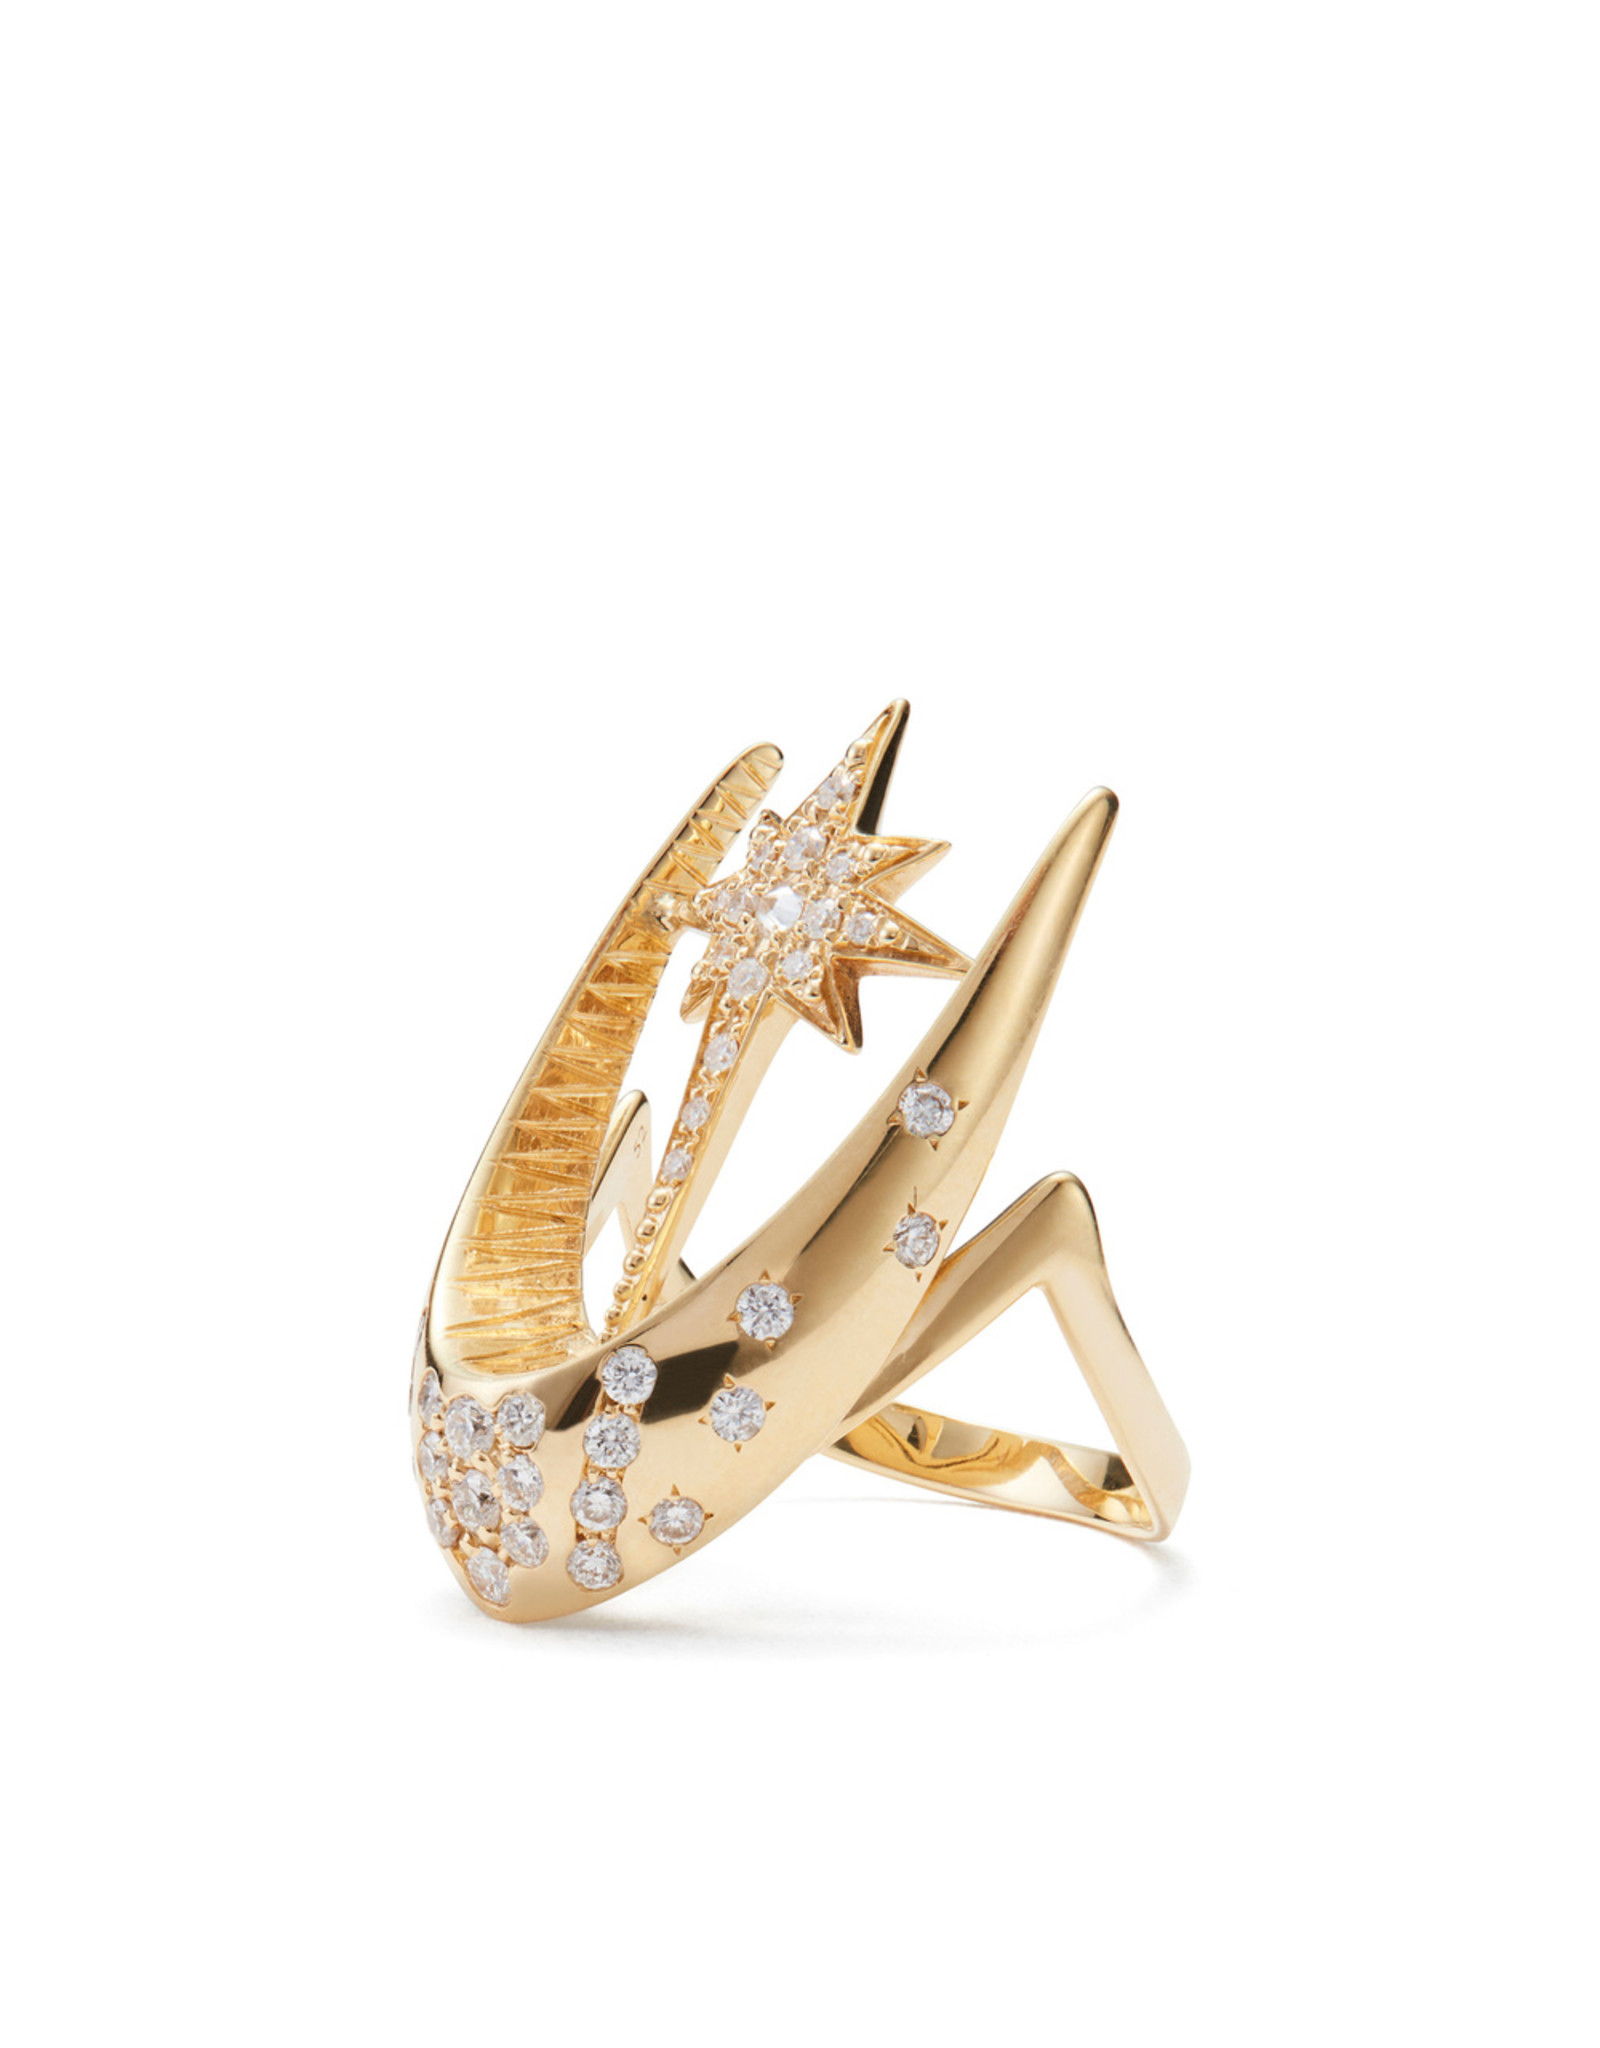 Venyx Venyx Parrot Star Fish Ring - Yellow Gold (Size: 6)